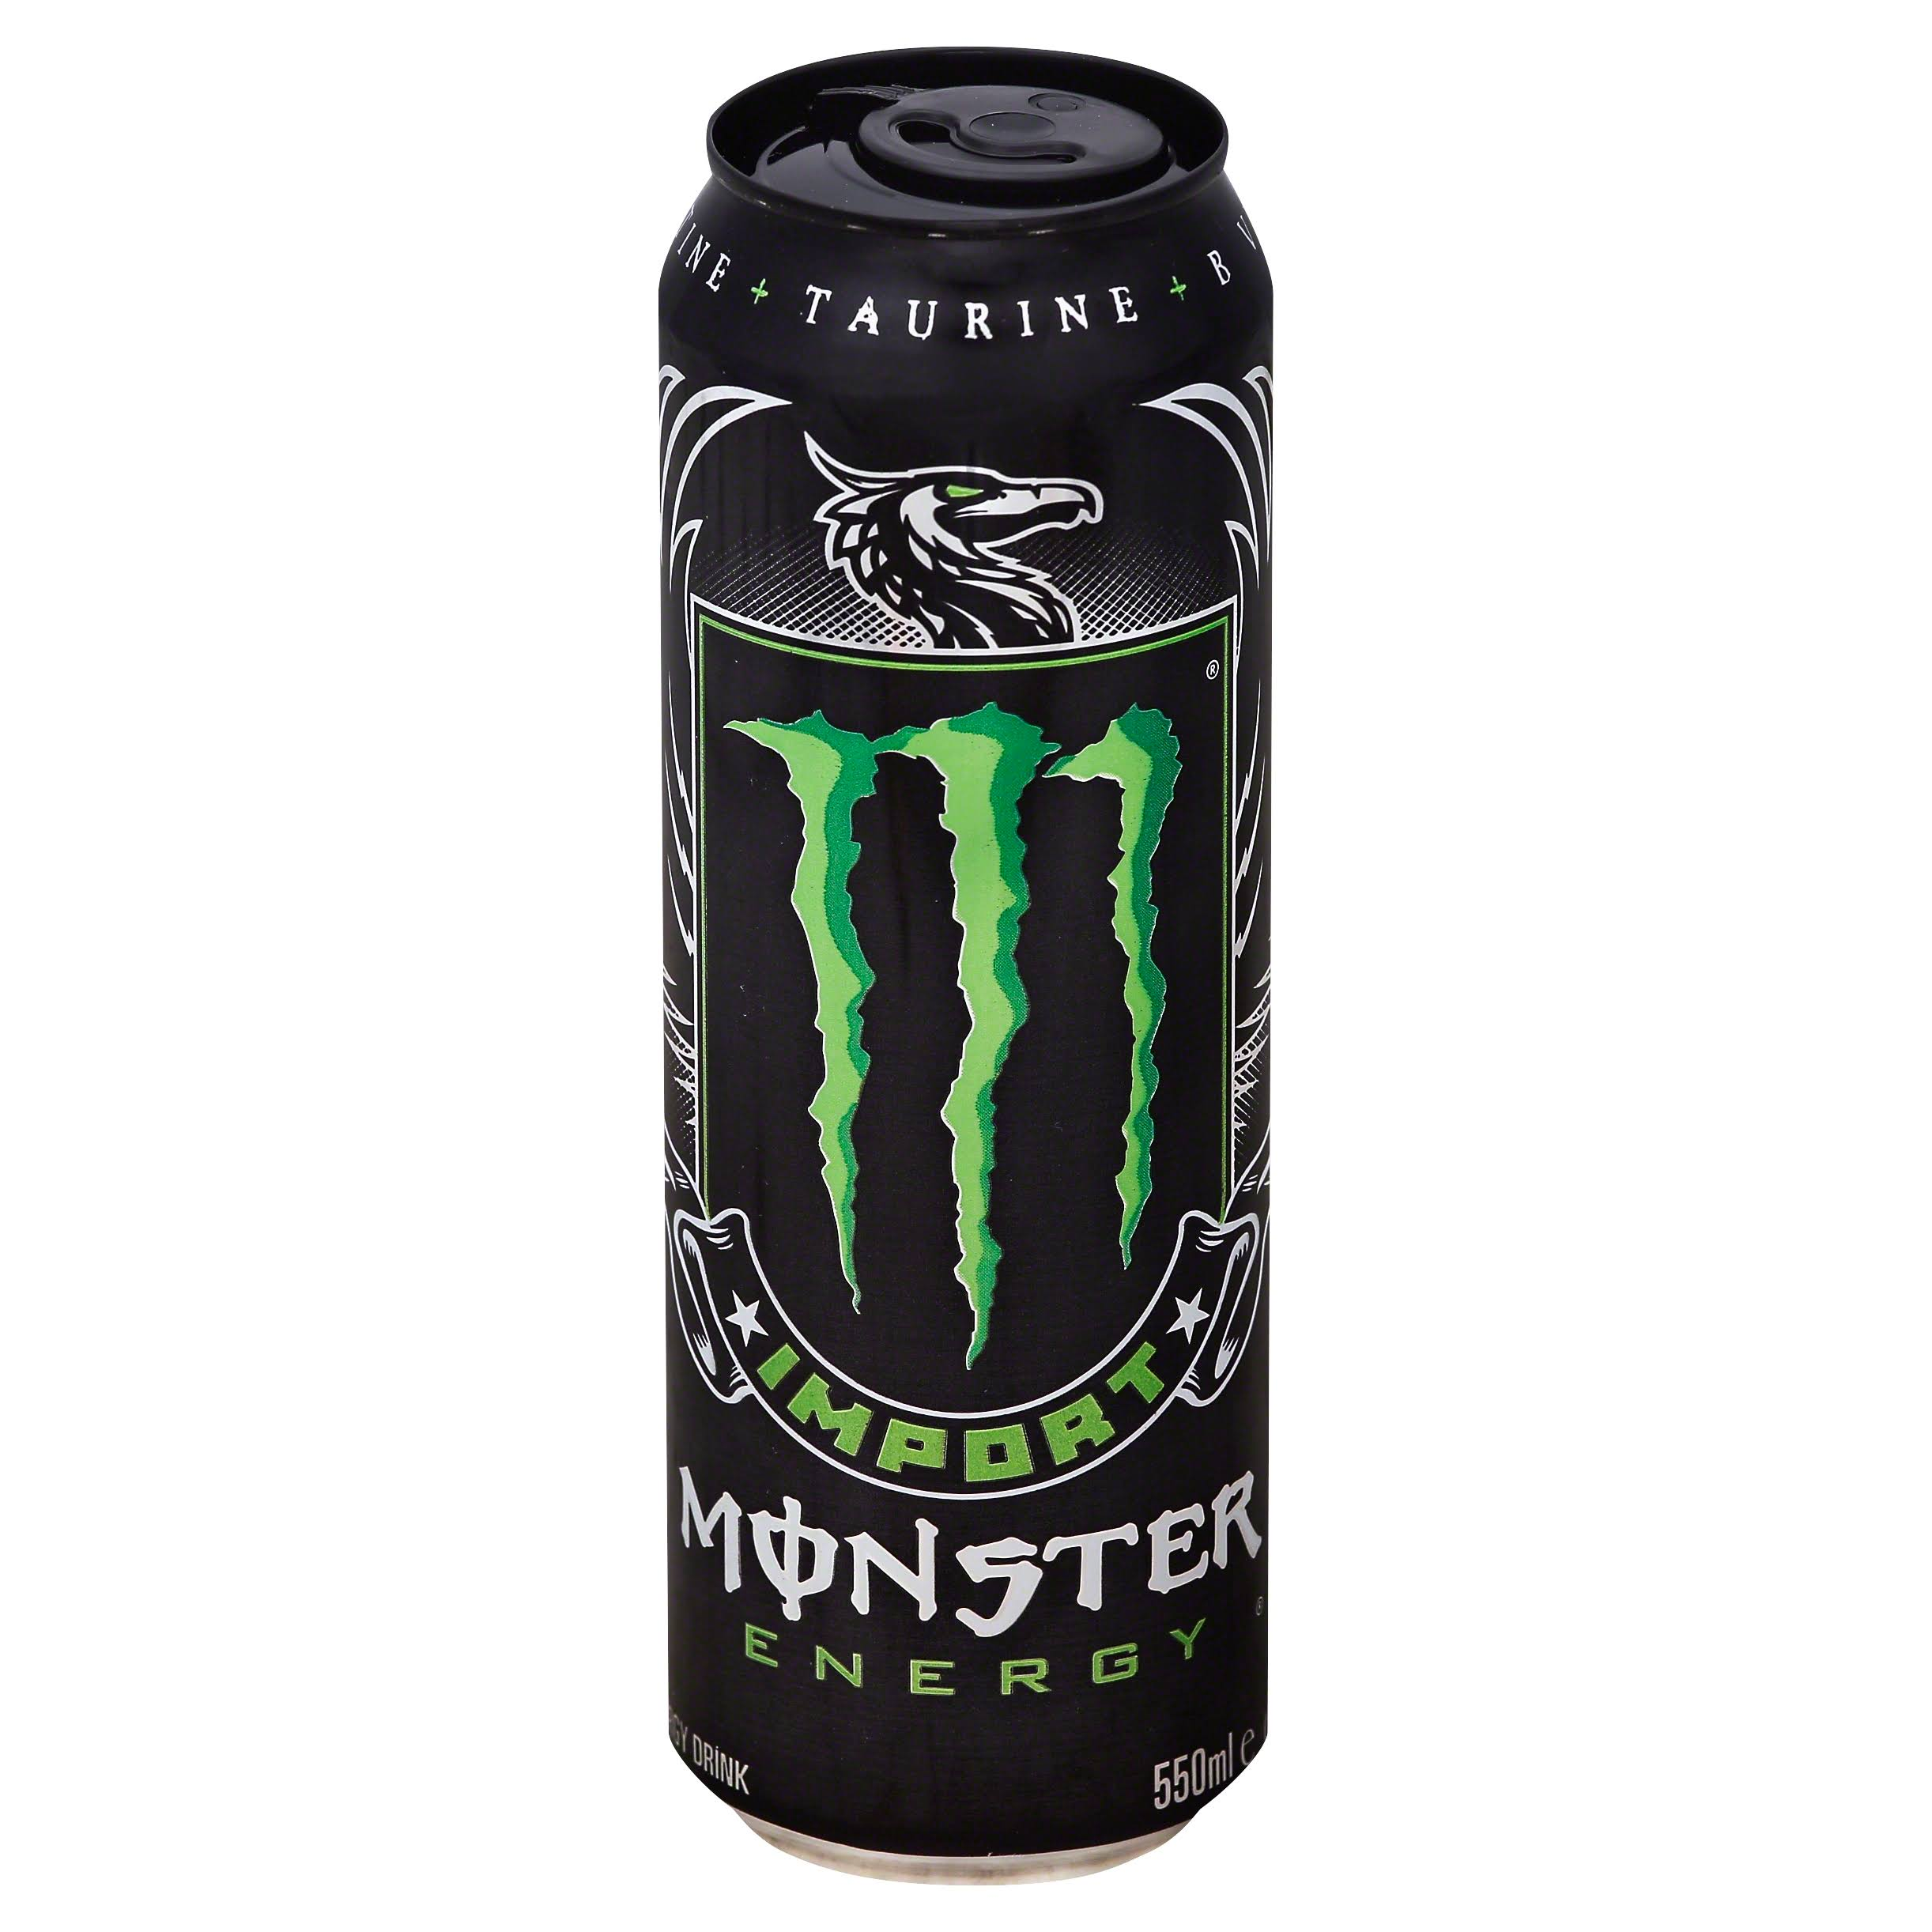 Monster Import Energy Drink - 18.6fl oz